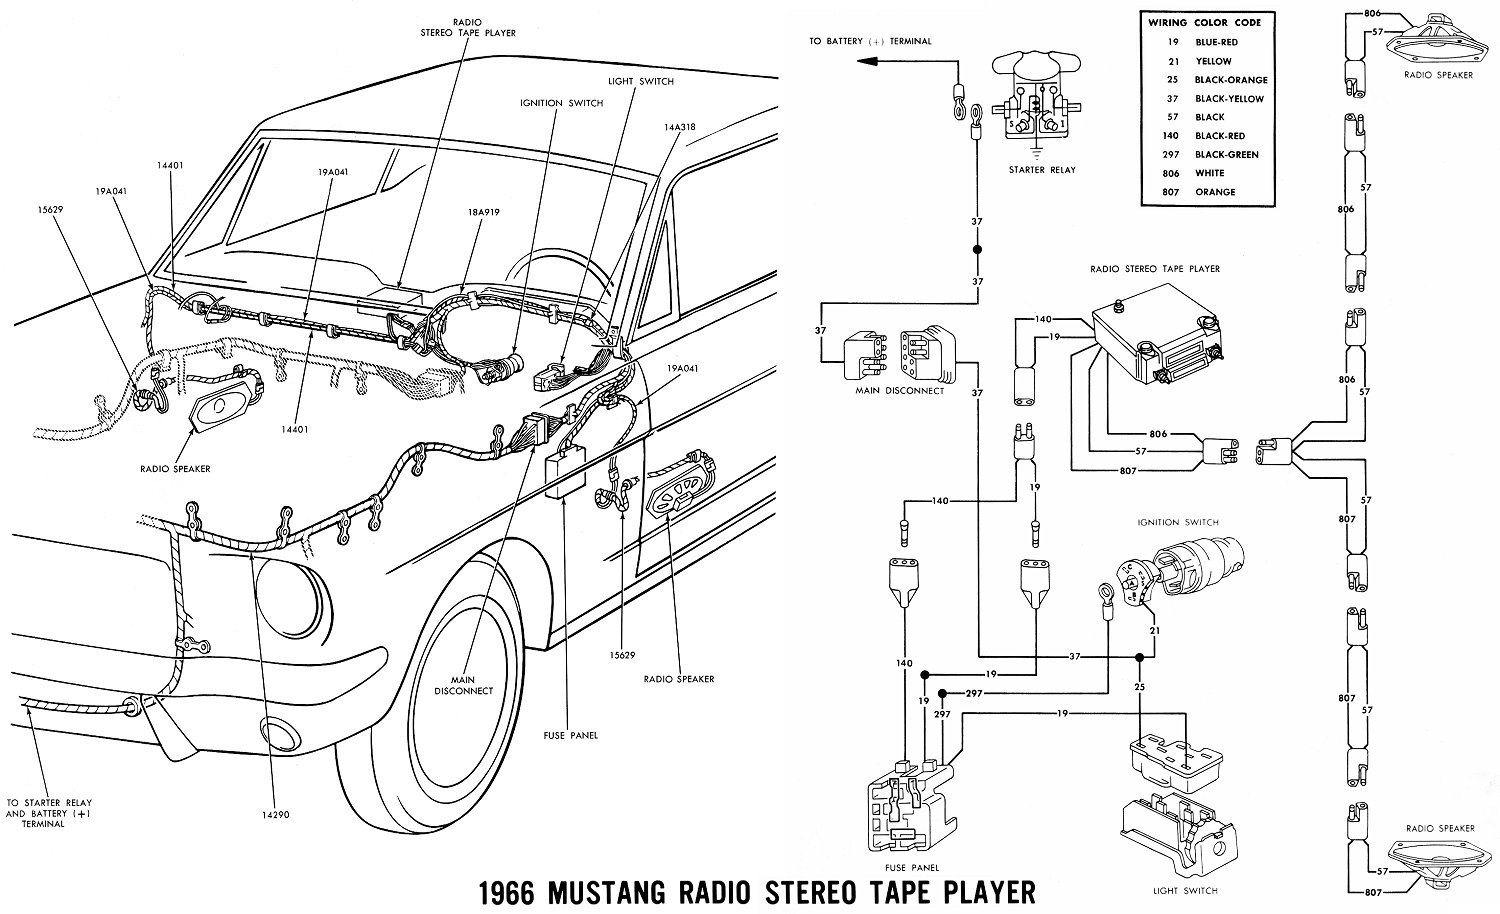 1966 Mustang Alternator Belt Diagram Wiring Schematic Manual E Books 1969 Ford F100 Diagram1966